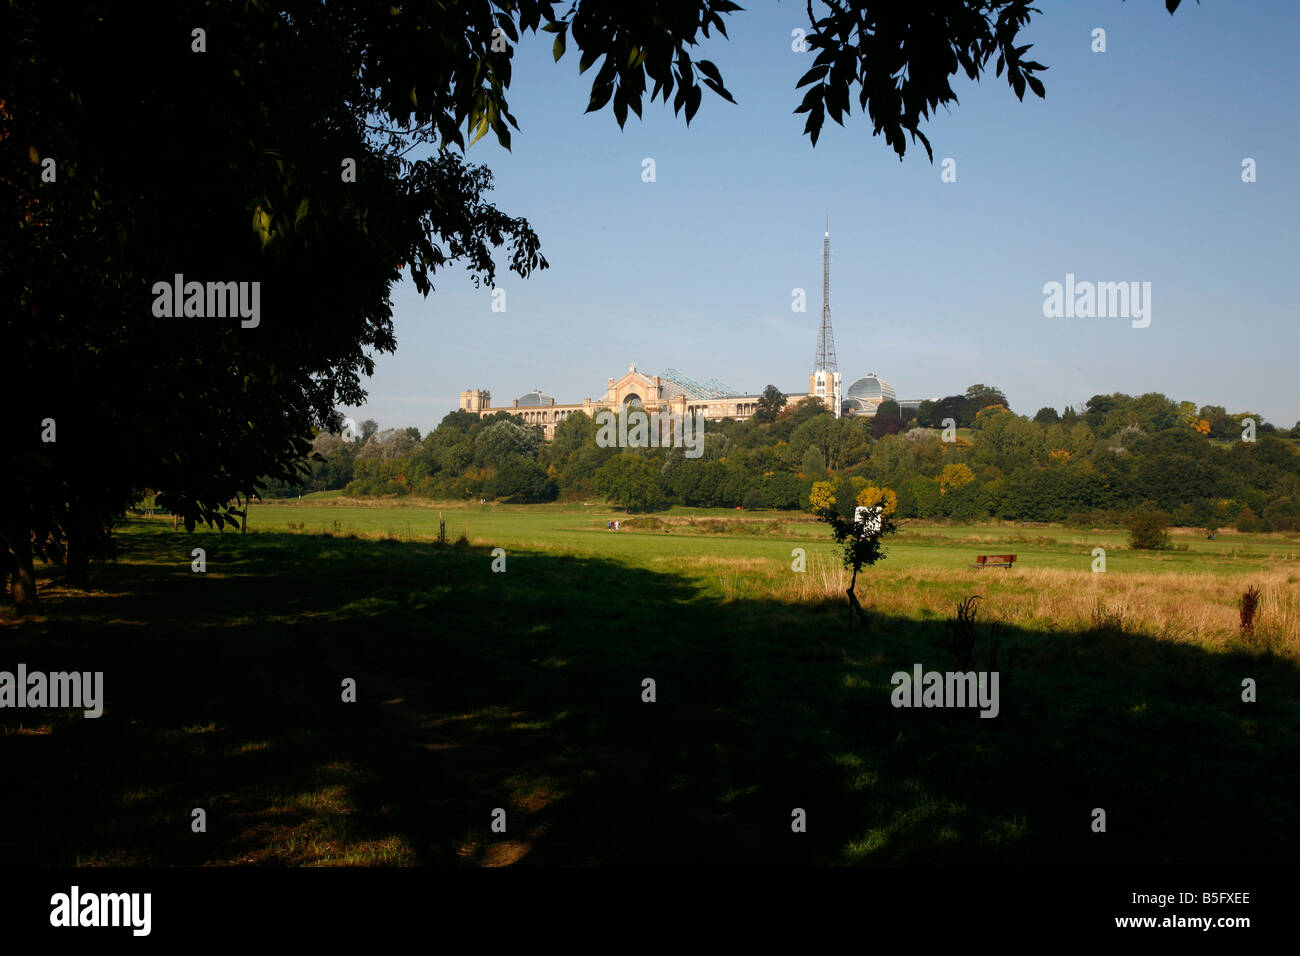 Alexandra Palace in Alexandra Park, Wood Green, London - Stock Image